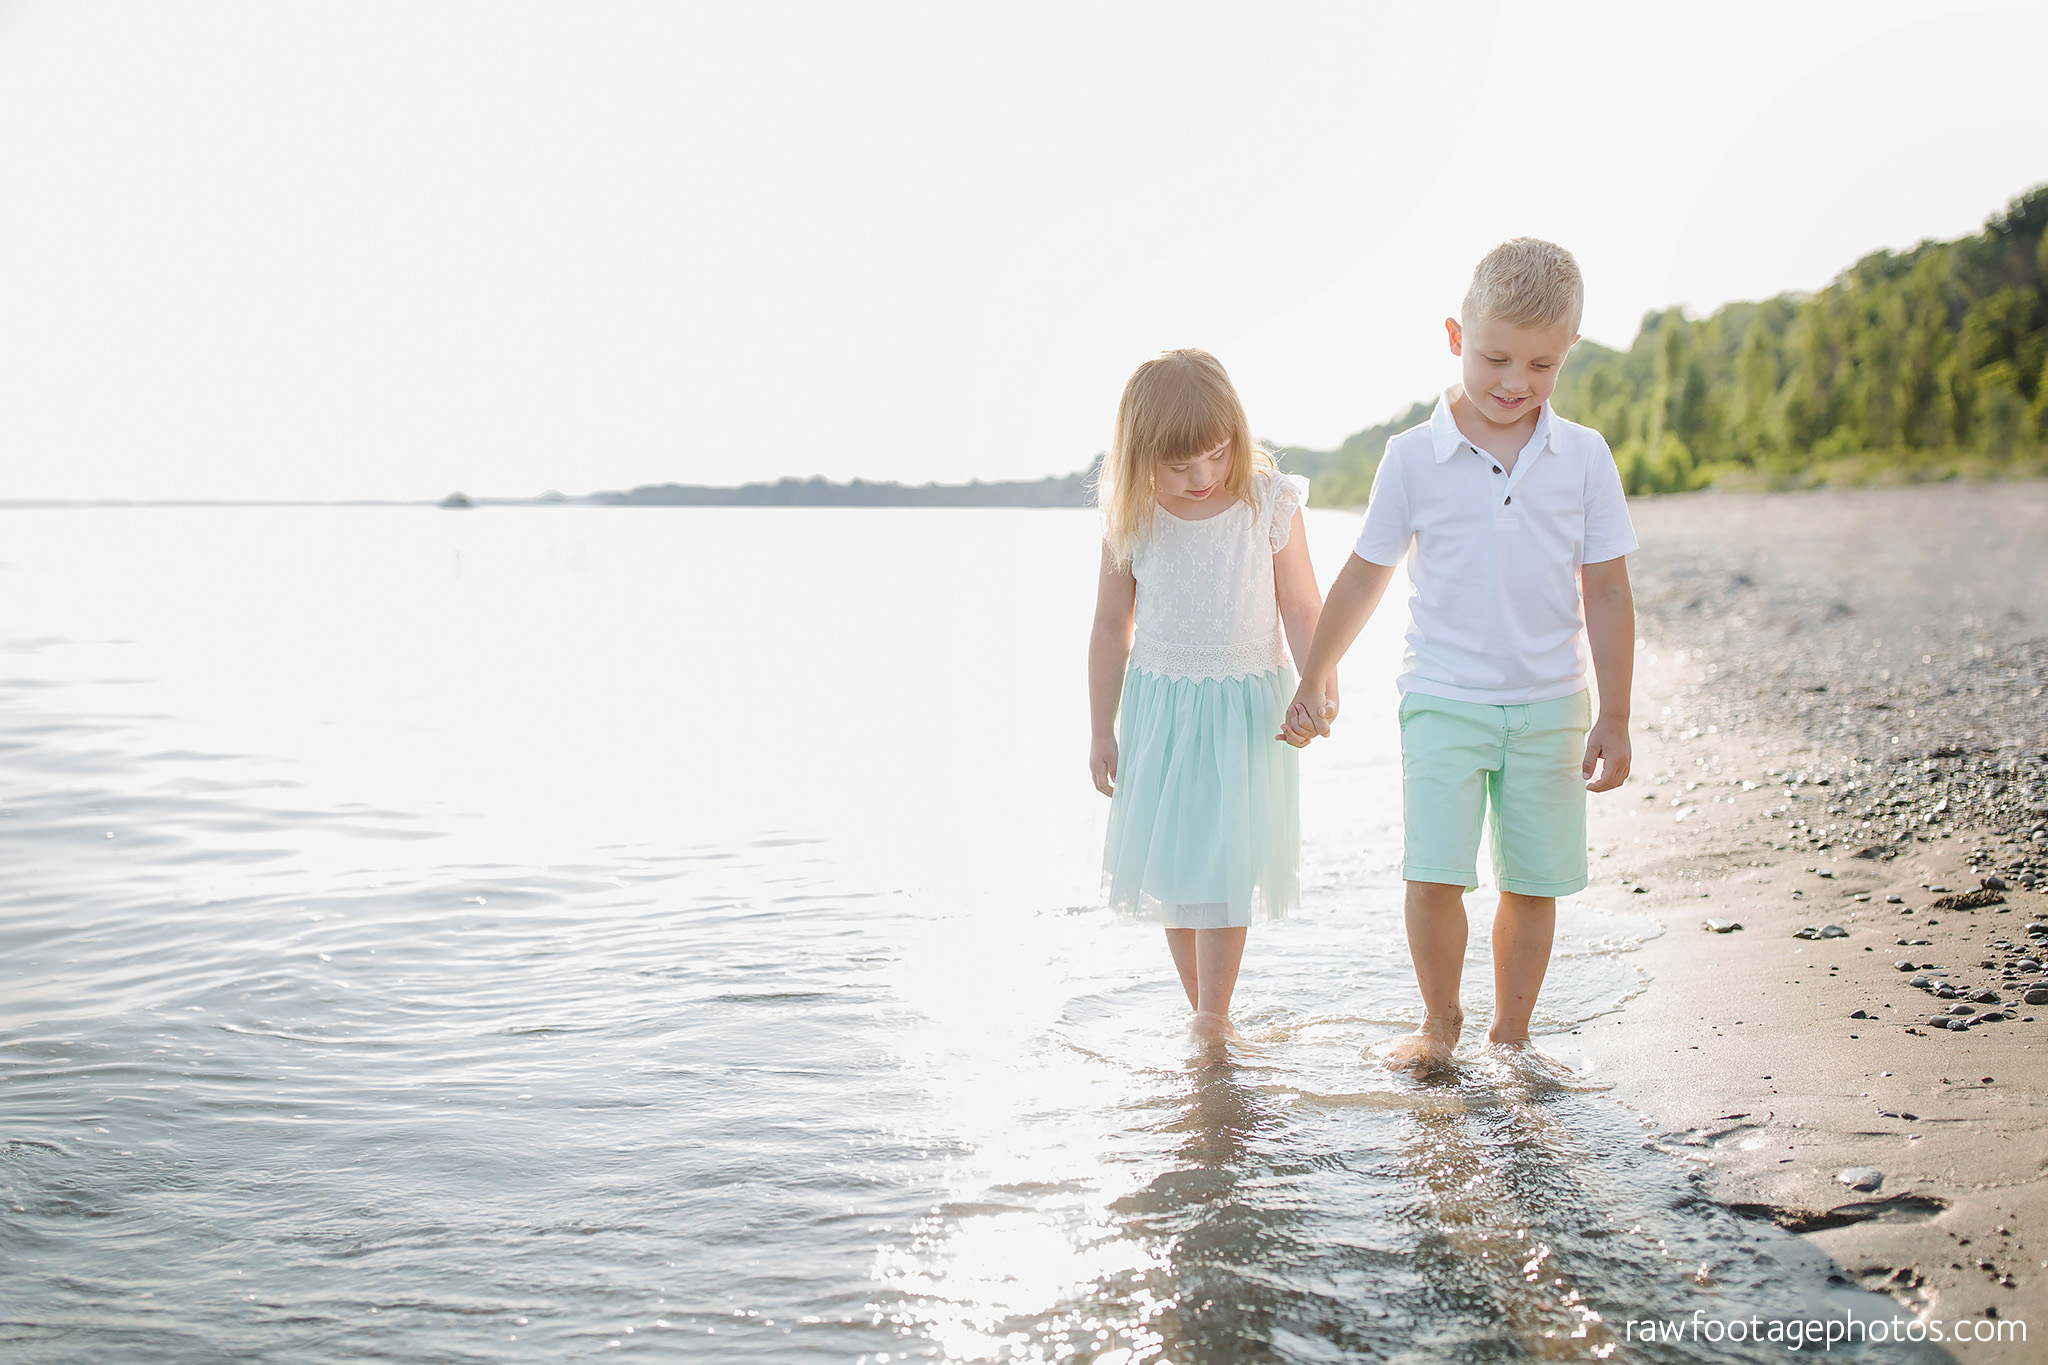 london_ontario_family_photographer-beach_minis-port_stanley_beach-raw_footage_photography024.jpg